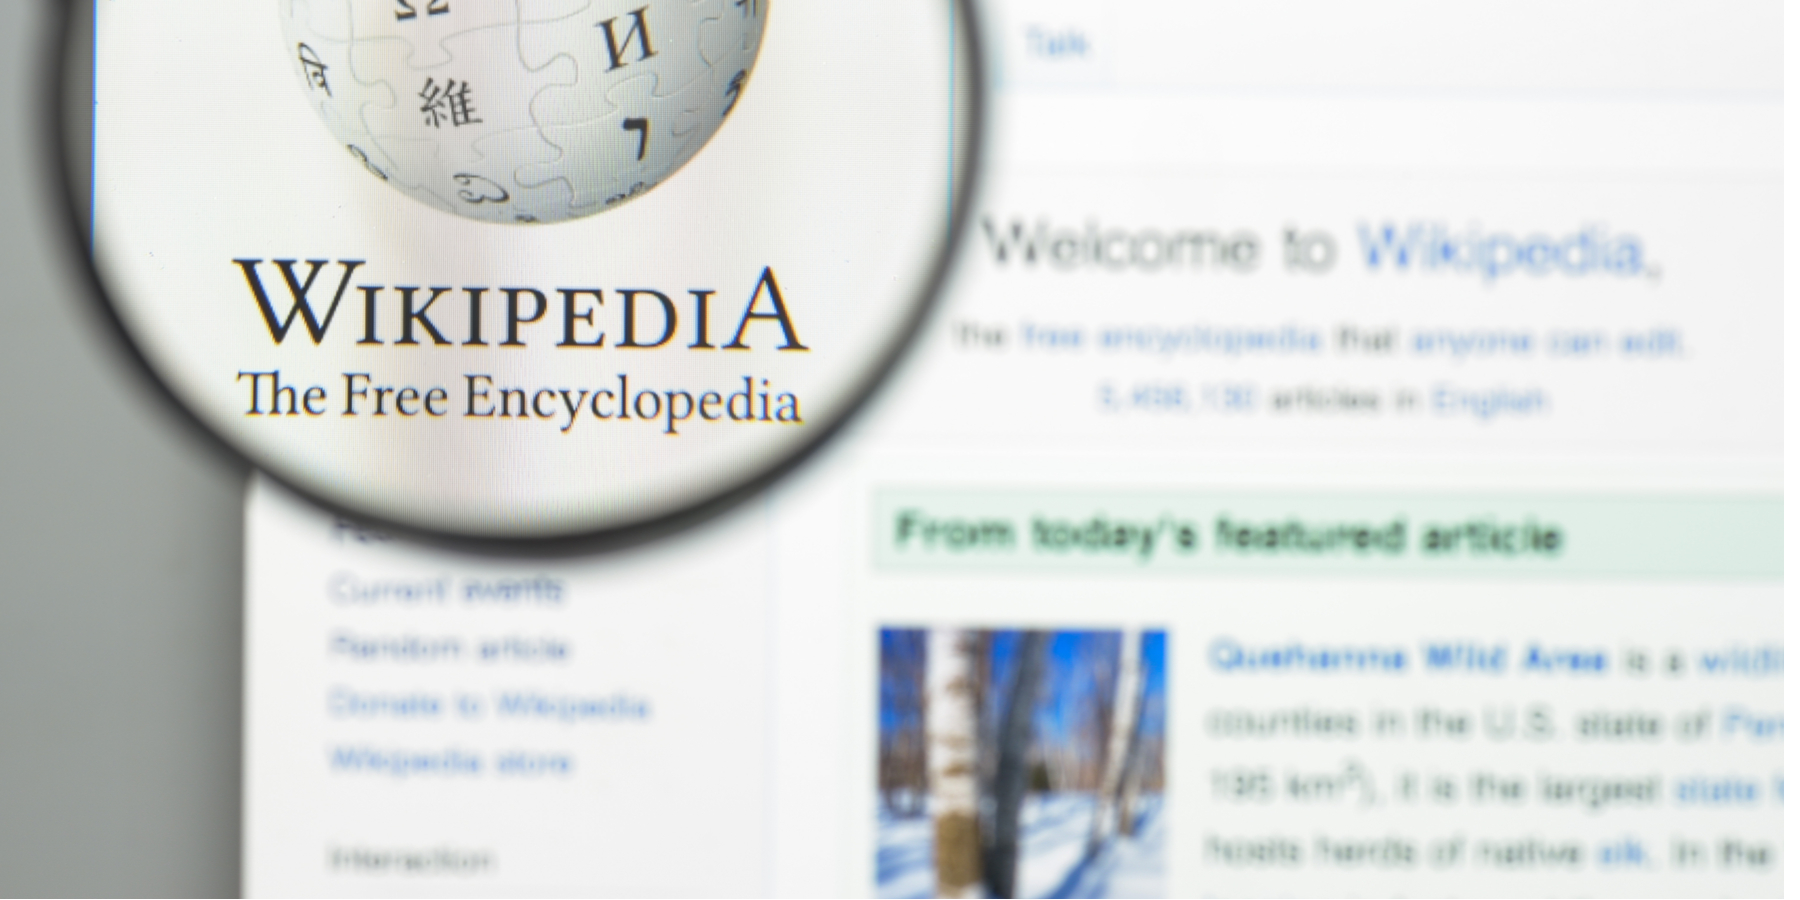 Should Crowdsourced, Unvetted Content on Wikipedia Be Used in Health Sciences Teaching and Learning?